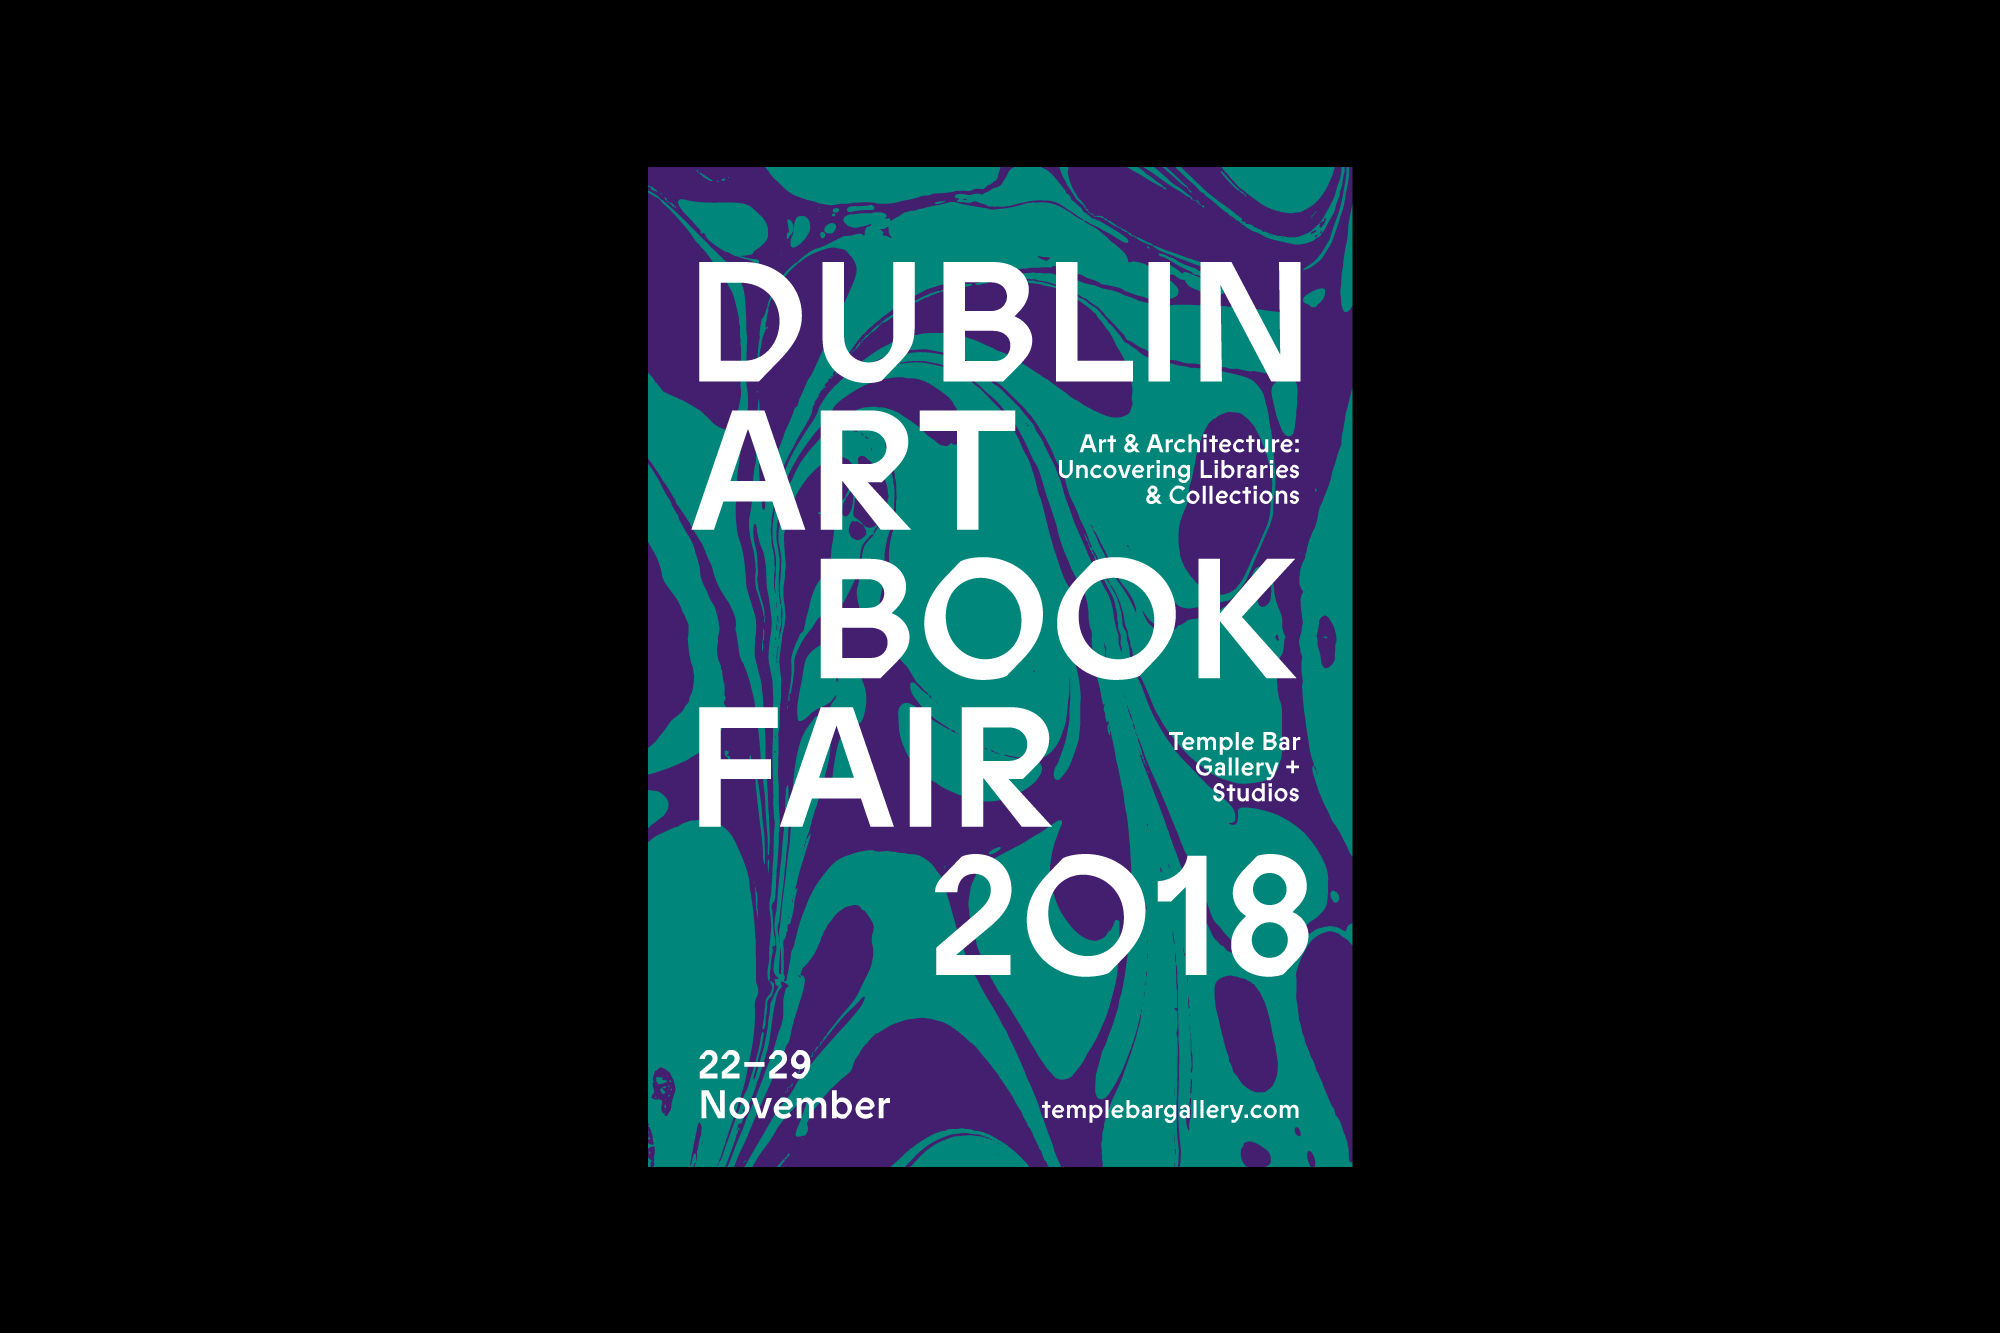 Cover image: Dublin Art Book Fair 2018